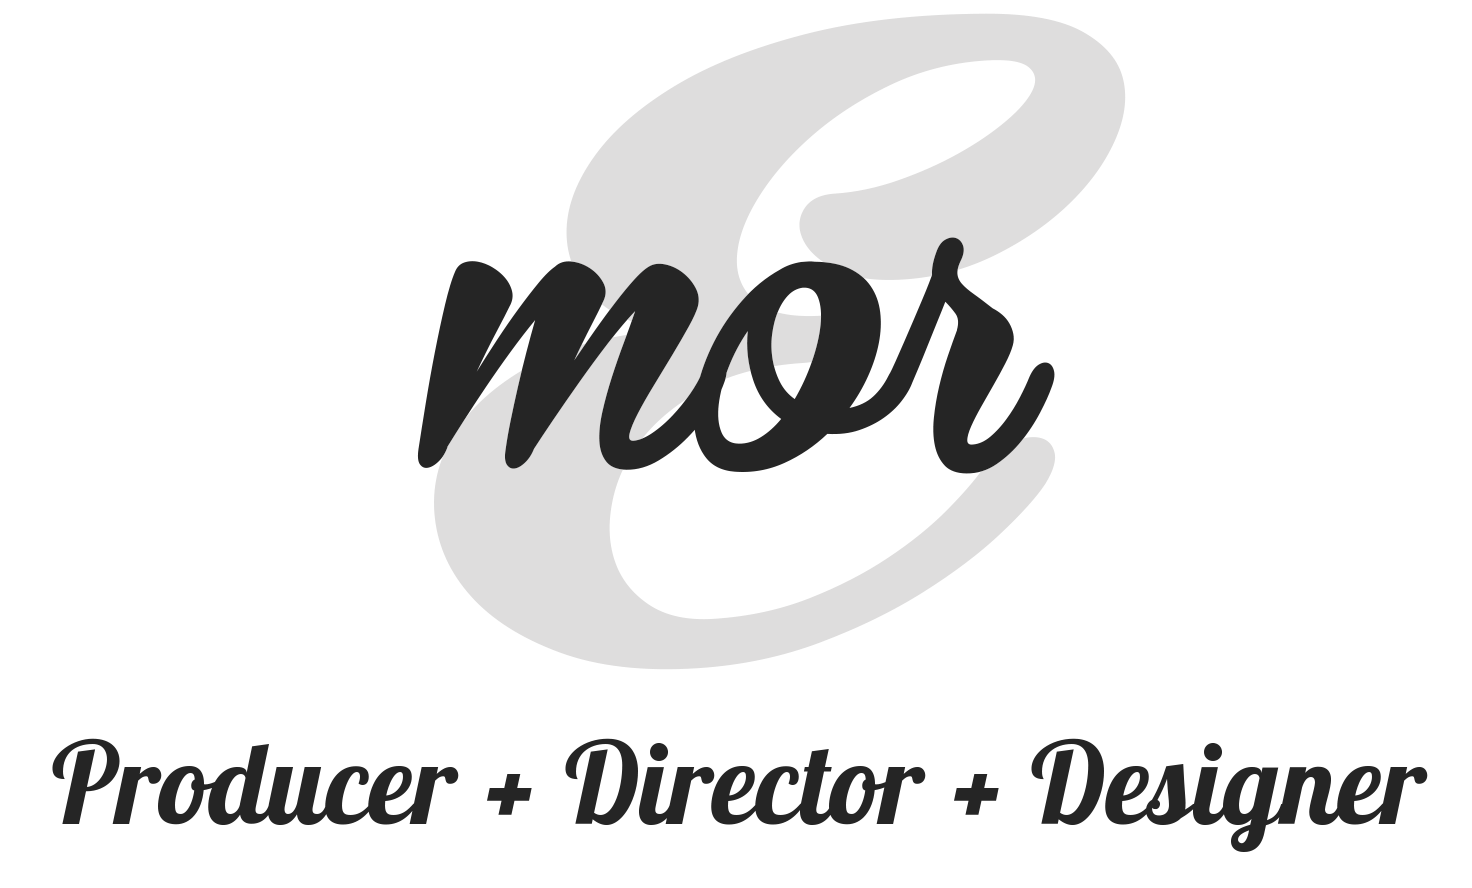 Designer, Producer, and Director Mor Shamay